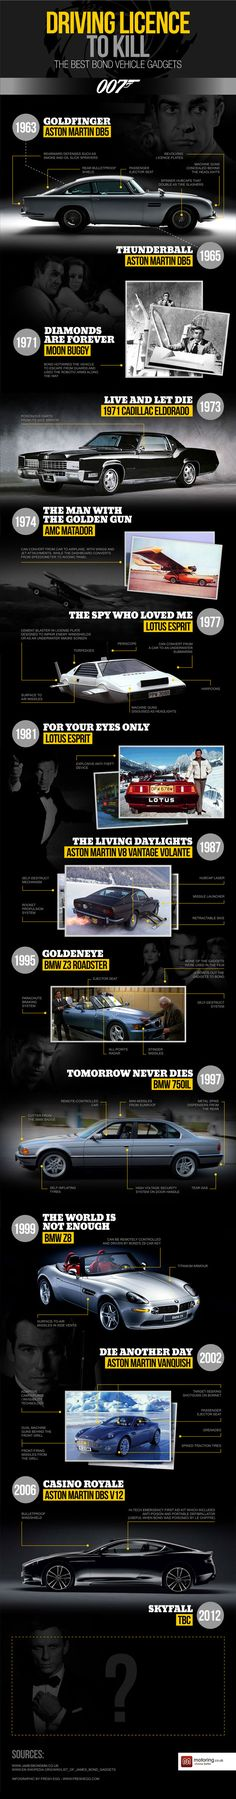 Fresh on IGM > #JamesBond Cars and Gadgets: Motoring.co.uk released this slicky and perfectly fitted to the Bond spirit illustration to give us the highlights of top line technology used in the history of famous agents cars.  > http://infographicsmania.com/bond-cars-gadgets/